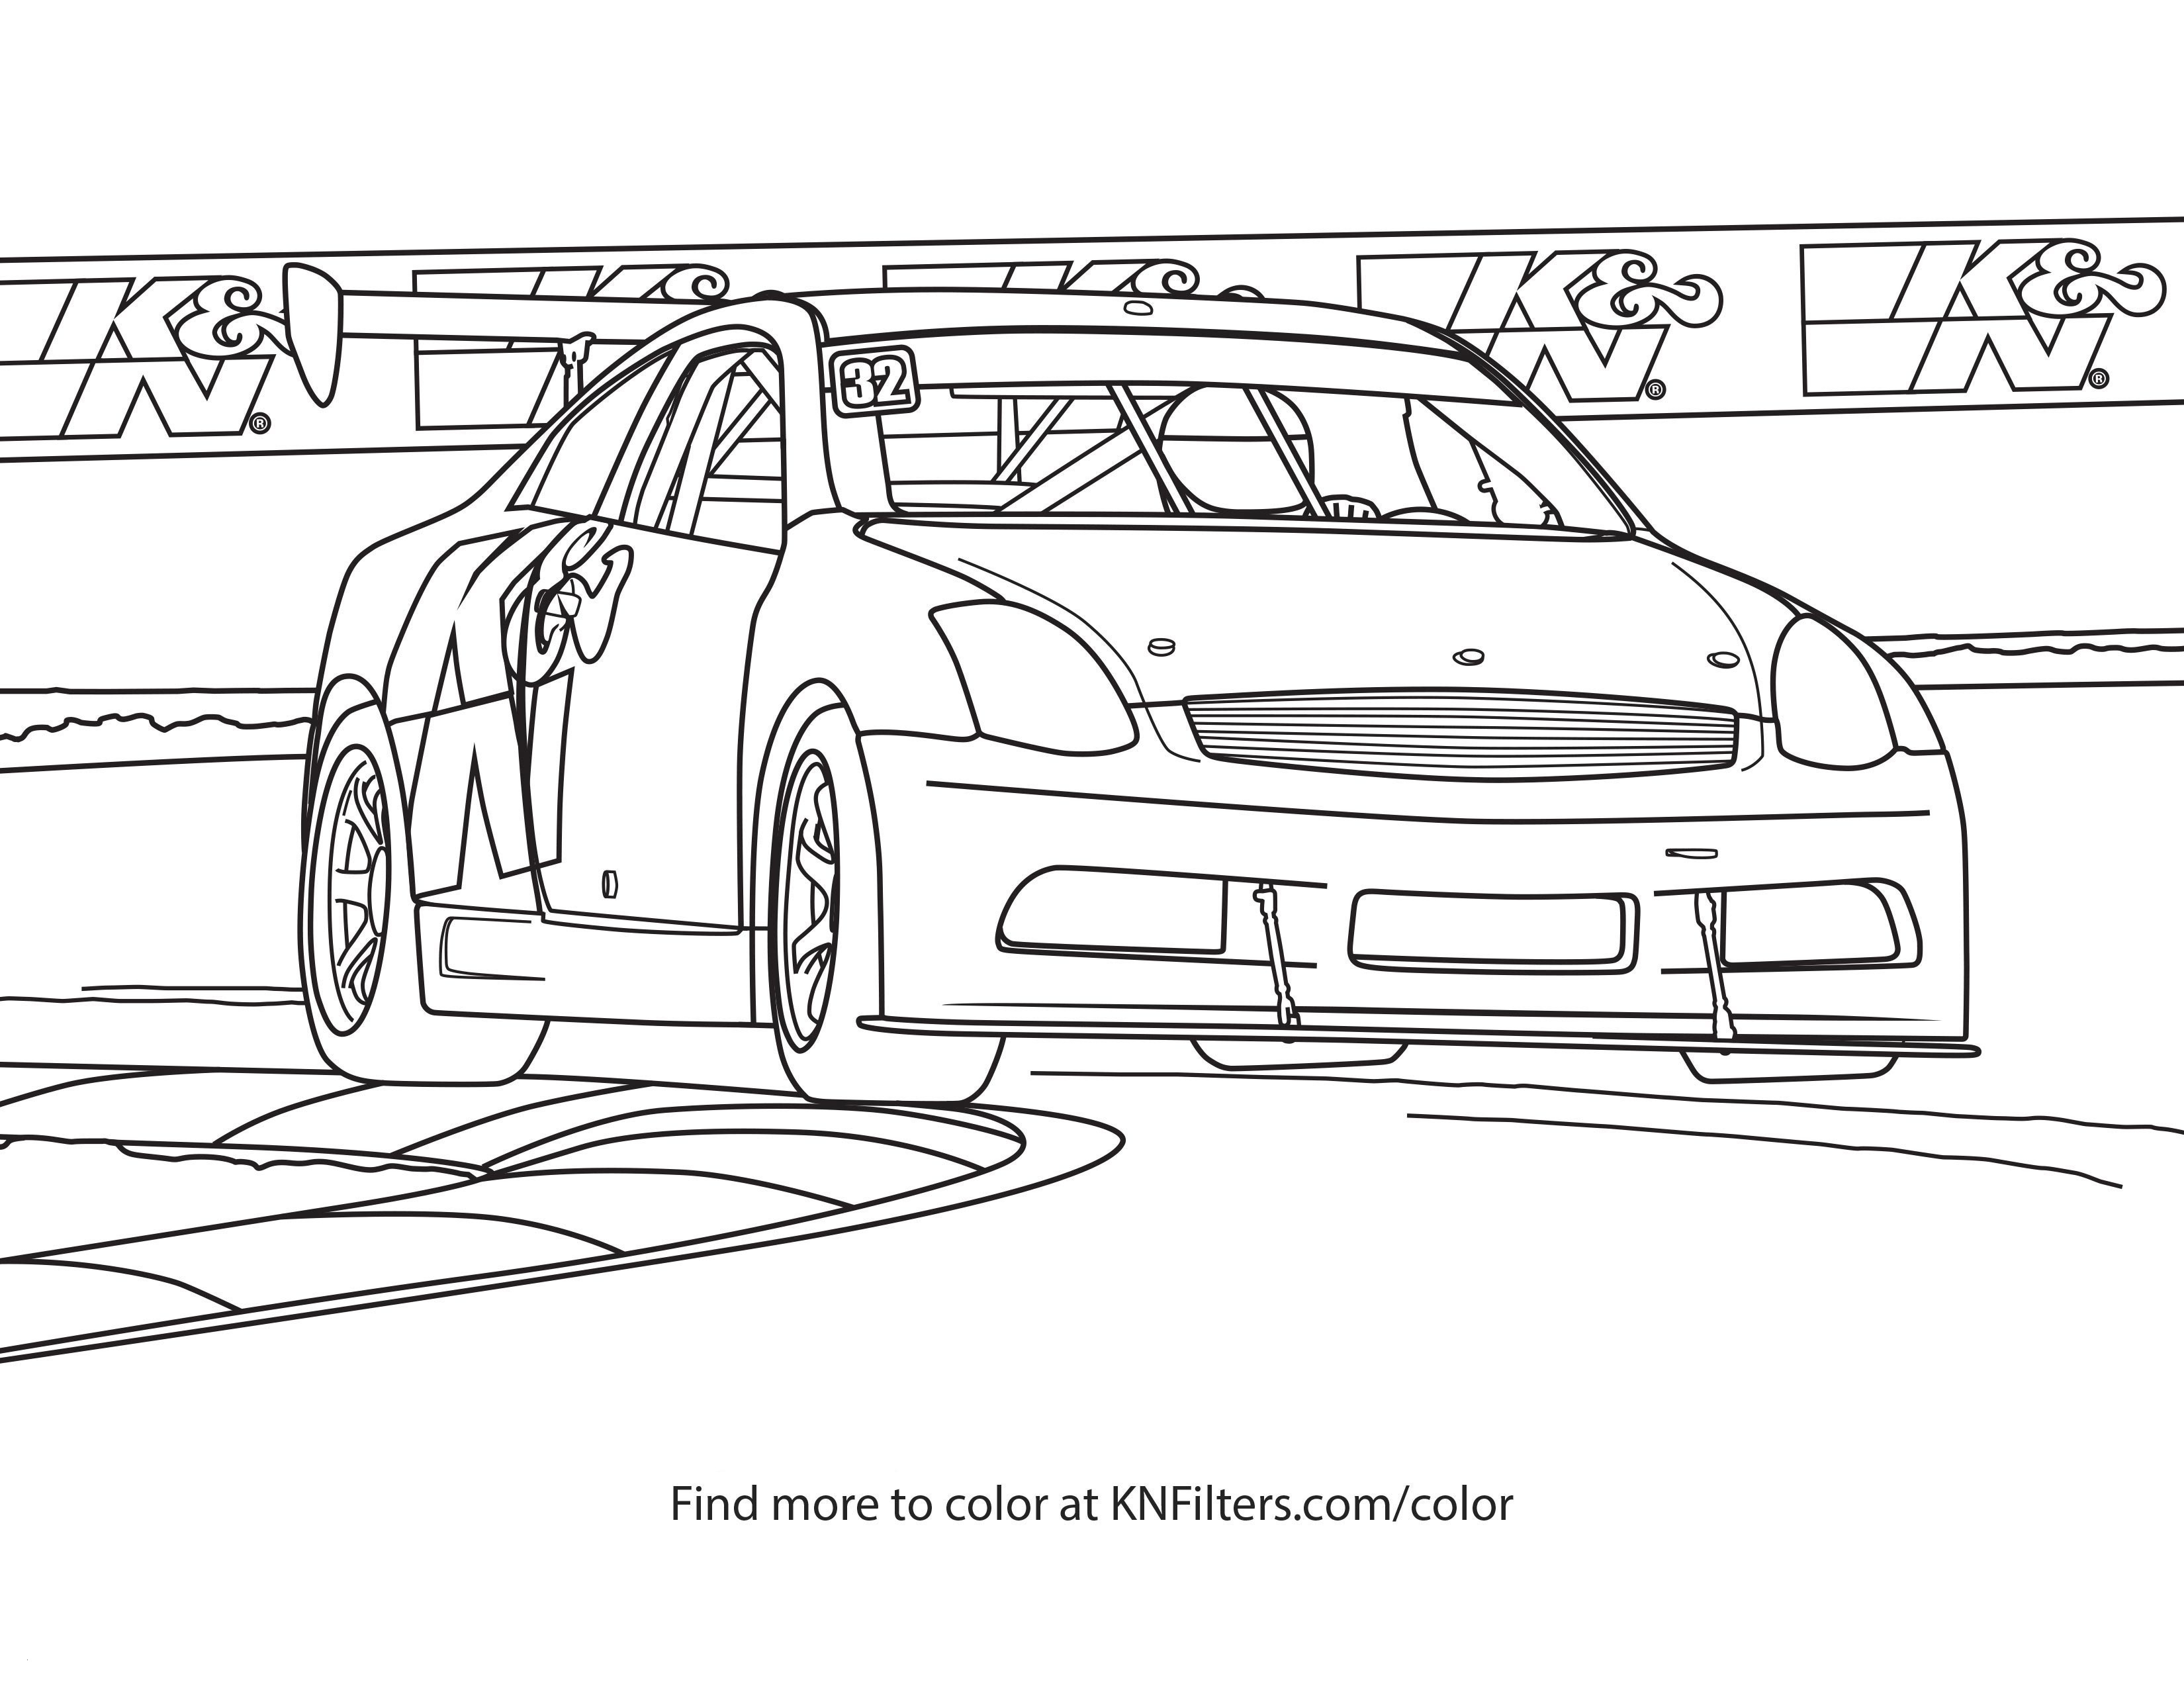 coloring pages cars 2 Download-Race Car Coloring Page Race Car Coloring Sheets Fresh K&n Printable Coloring Pages for Kids 11-b